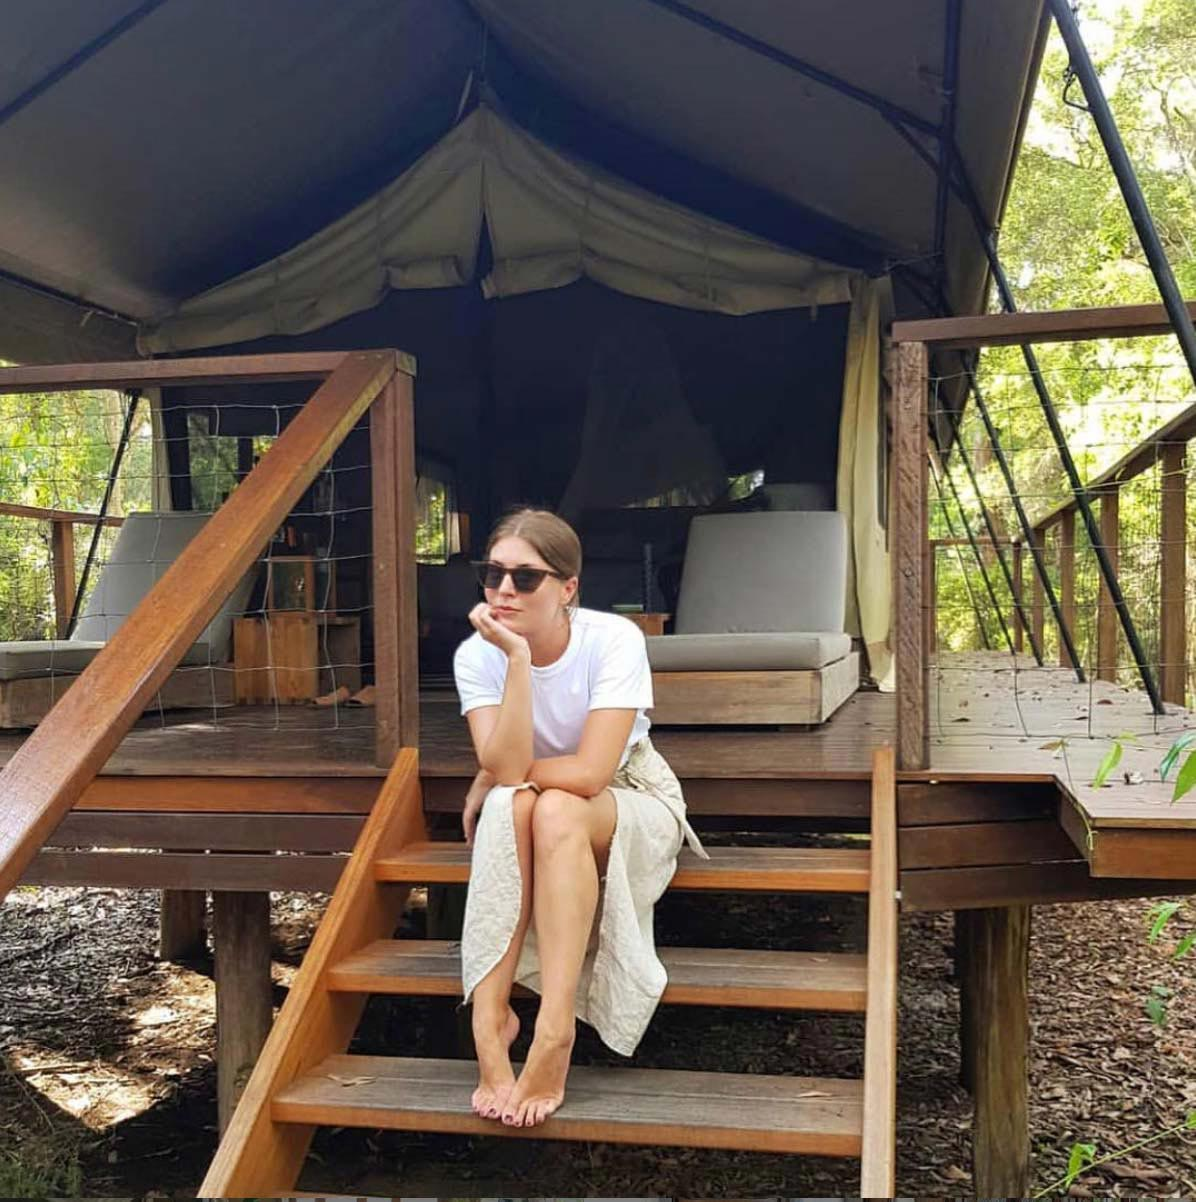 Vacation Glamping Tent